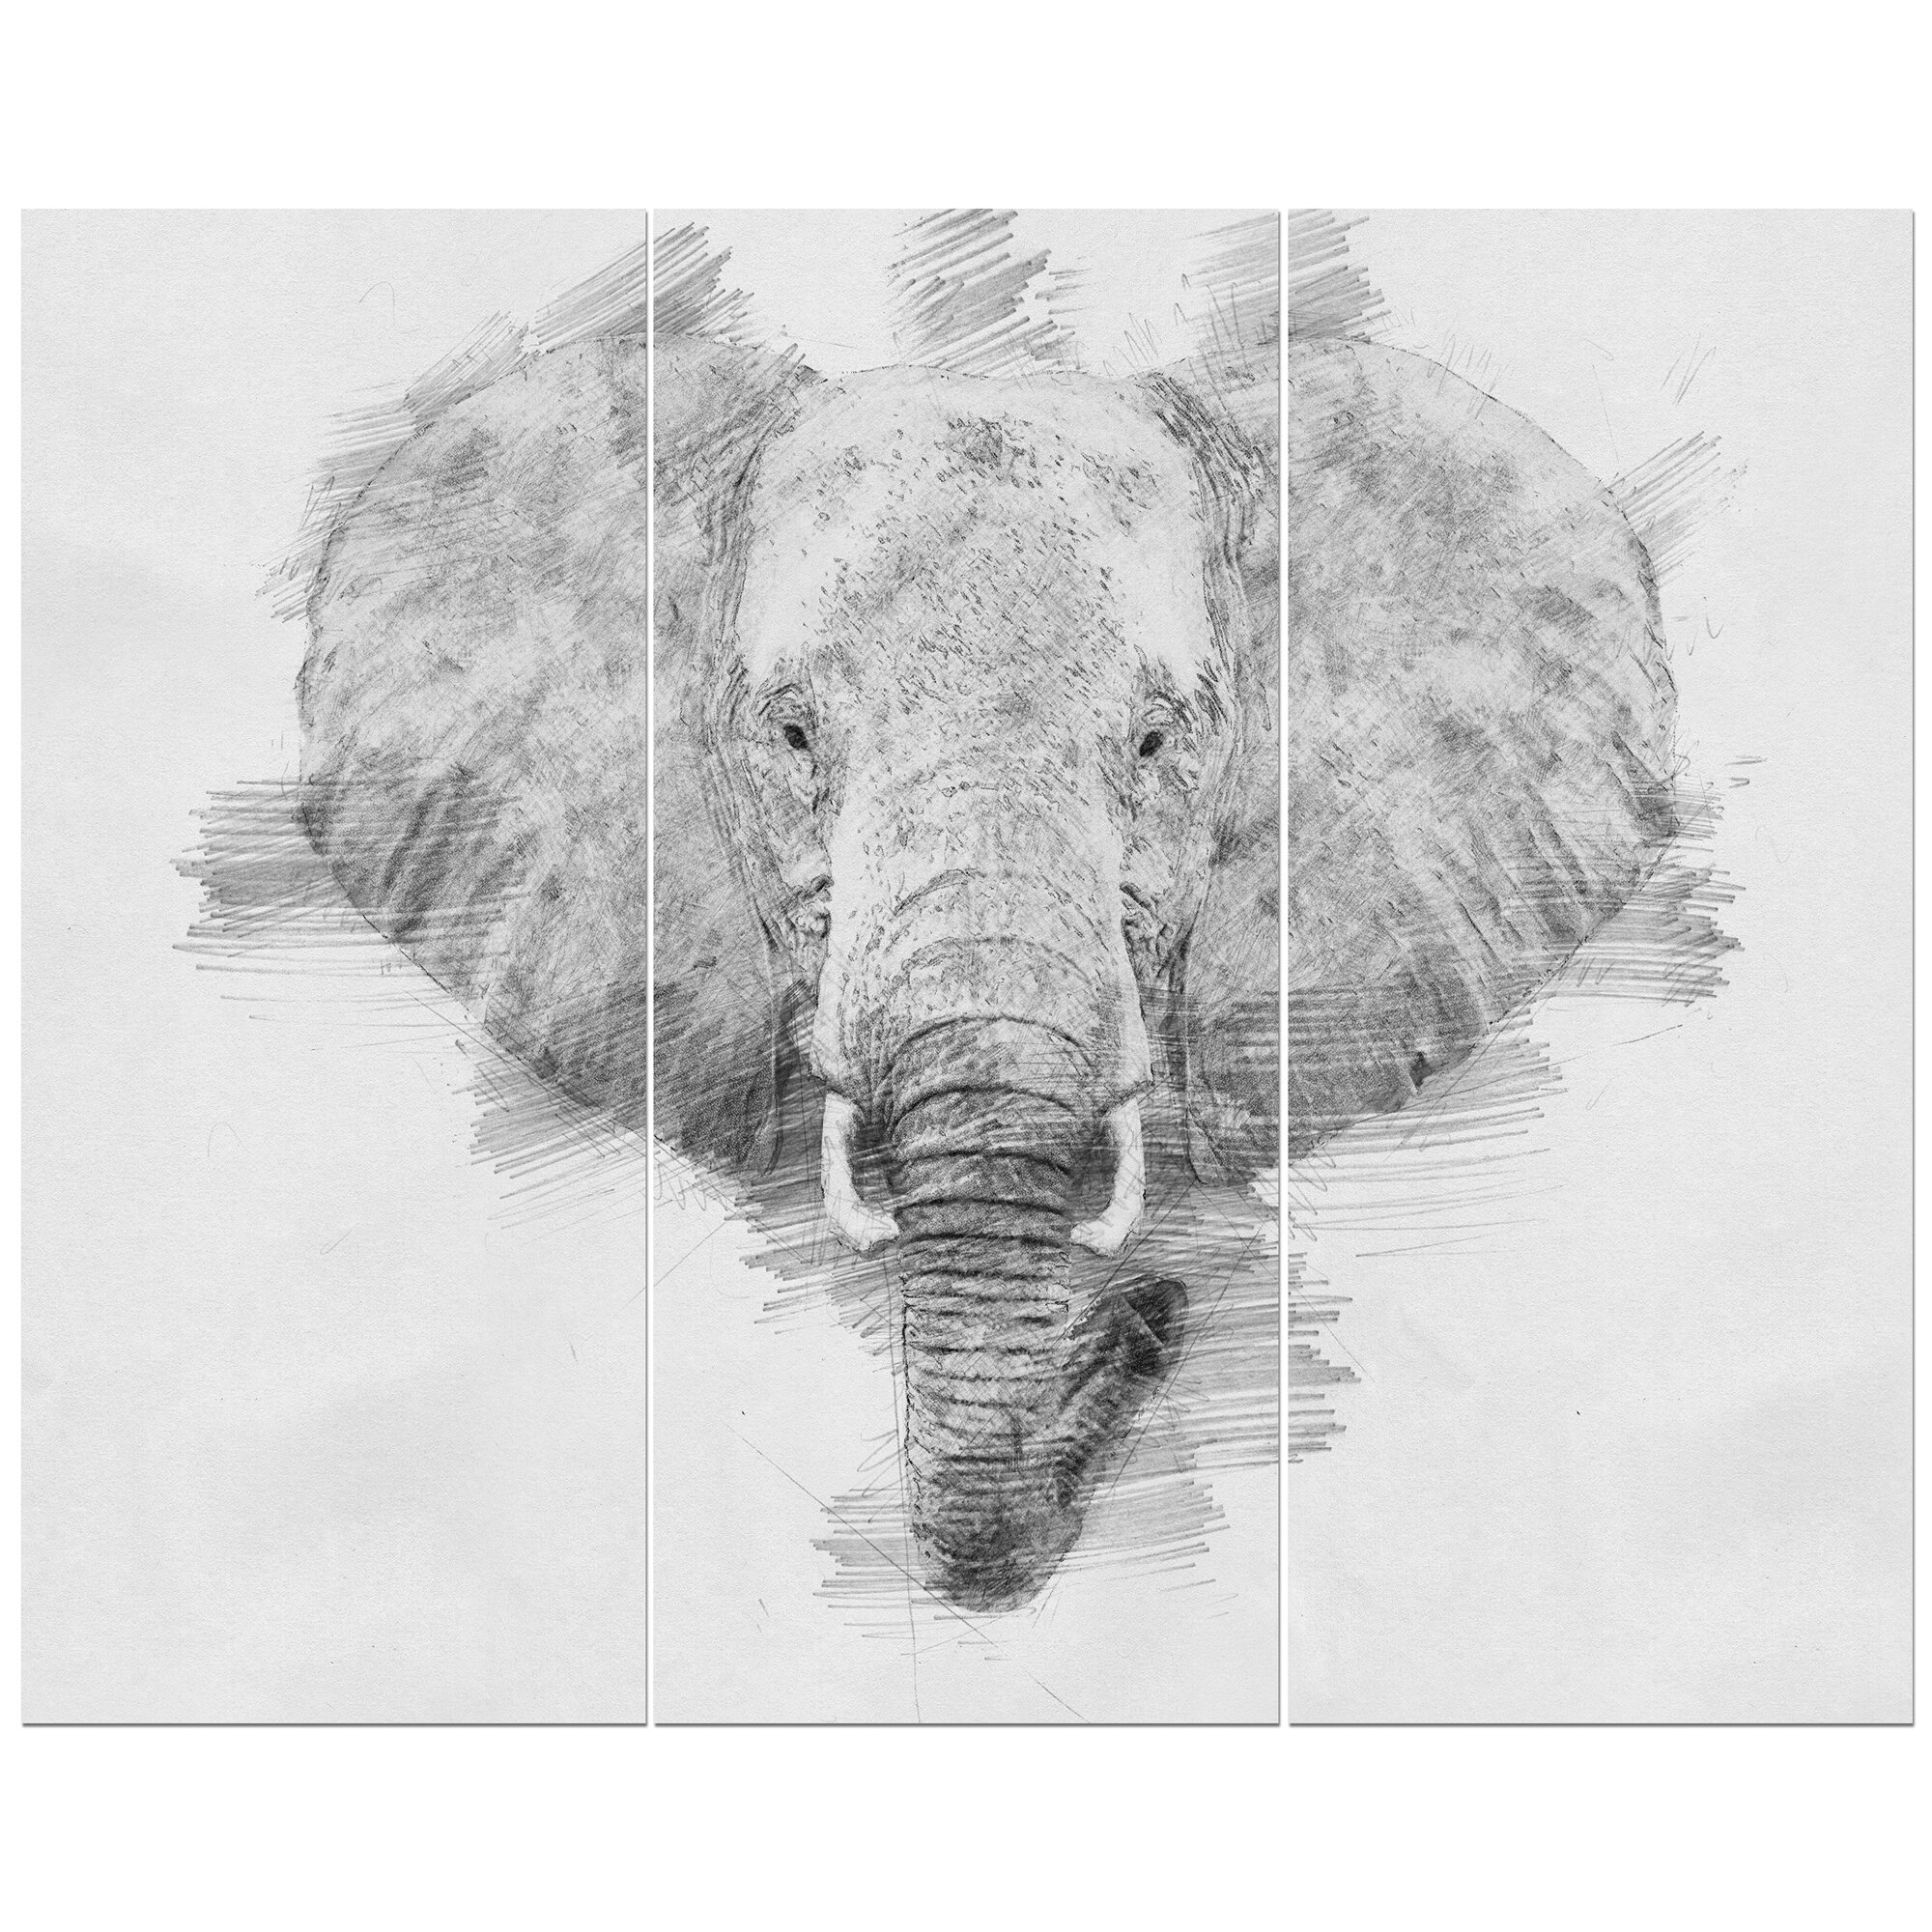 Elephant in pencil sketch drawing print multi piece image on wrapped canvas